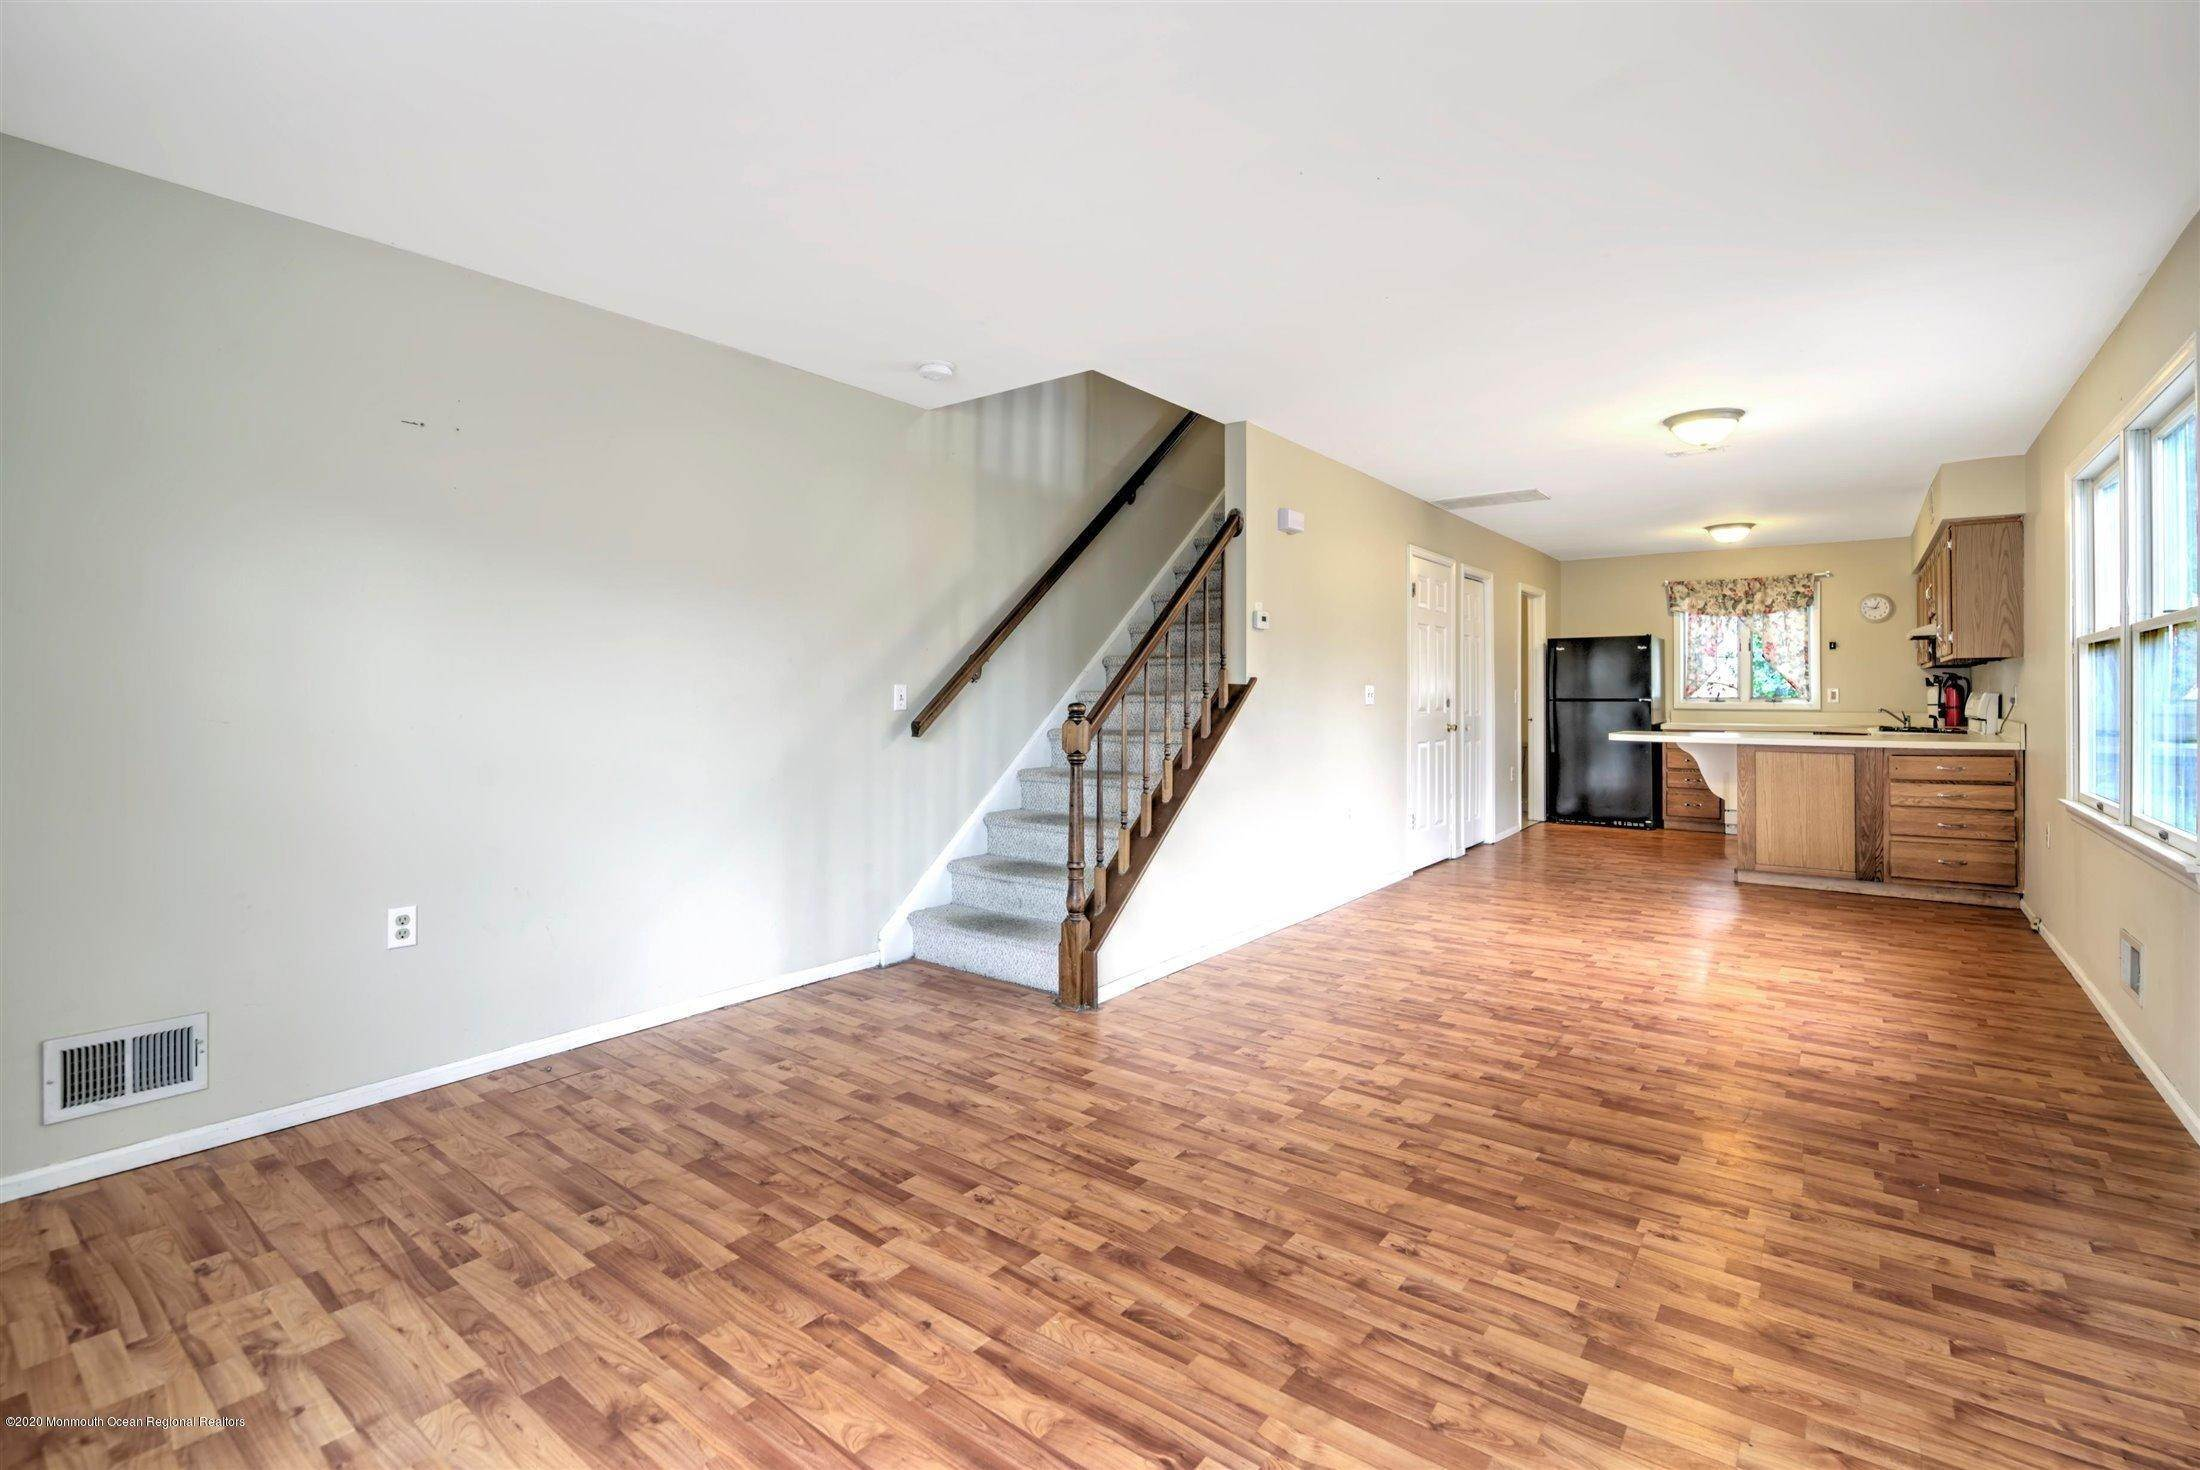 5. Condominiums for Sale at 401 Buermann Avenue Toms River, New Jersey 08753 United States